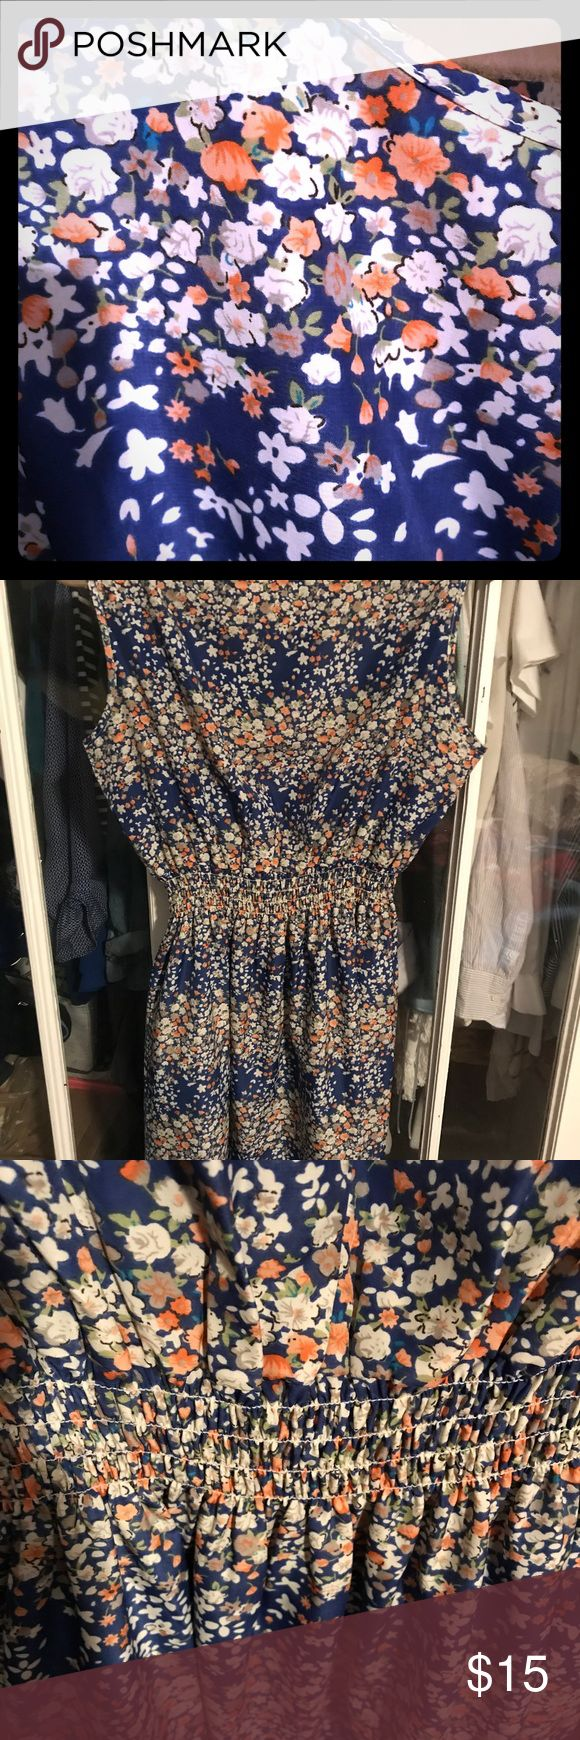 Perfect Floral Sundress Blue and White This sundress is one of two I purchased from a boutique somewhere. They are labeled as XXL, but fit more like a large. The fabric is thin, but not see through at all and the elastic waistband is loose and not tight. I wear a Jean jacket with both dresses and have worn both sandals and booties with them. So cute and comfortable. They also pack well in a suitcase! Pakula Dresses